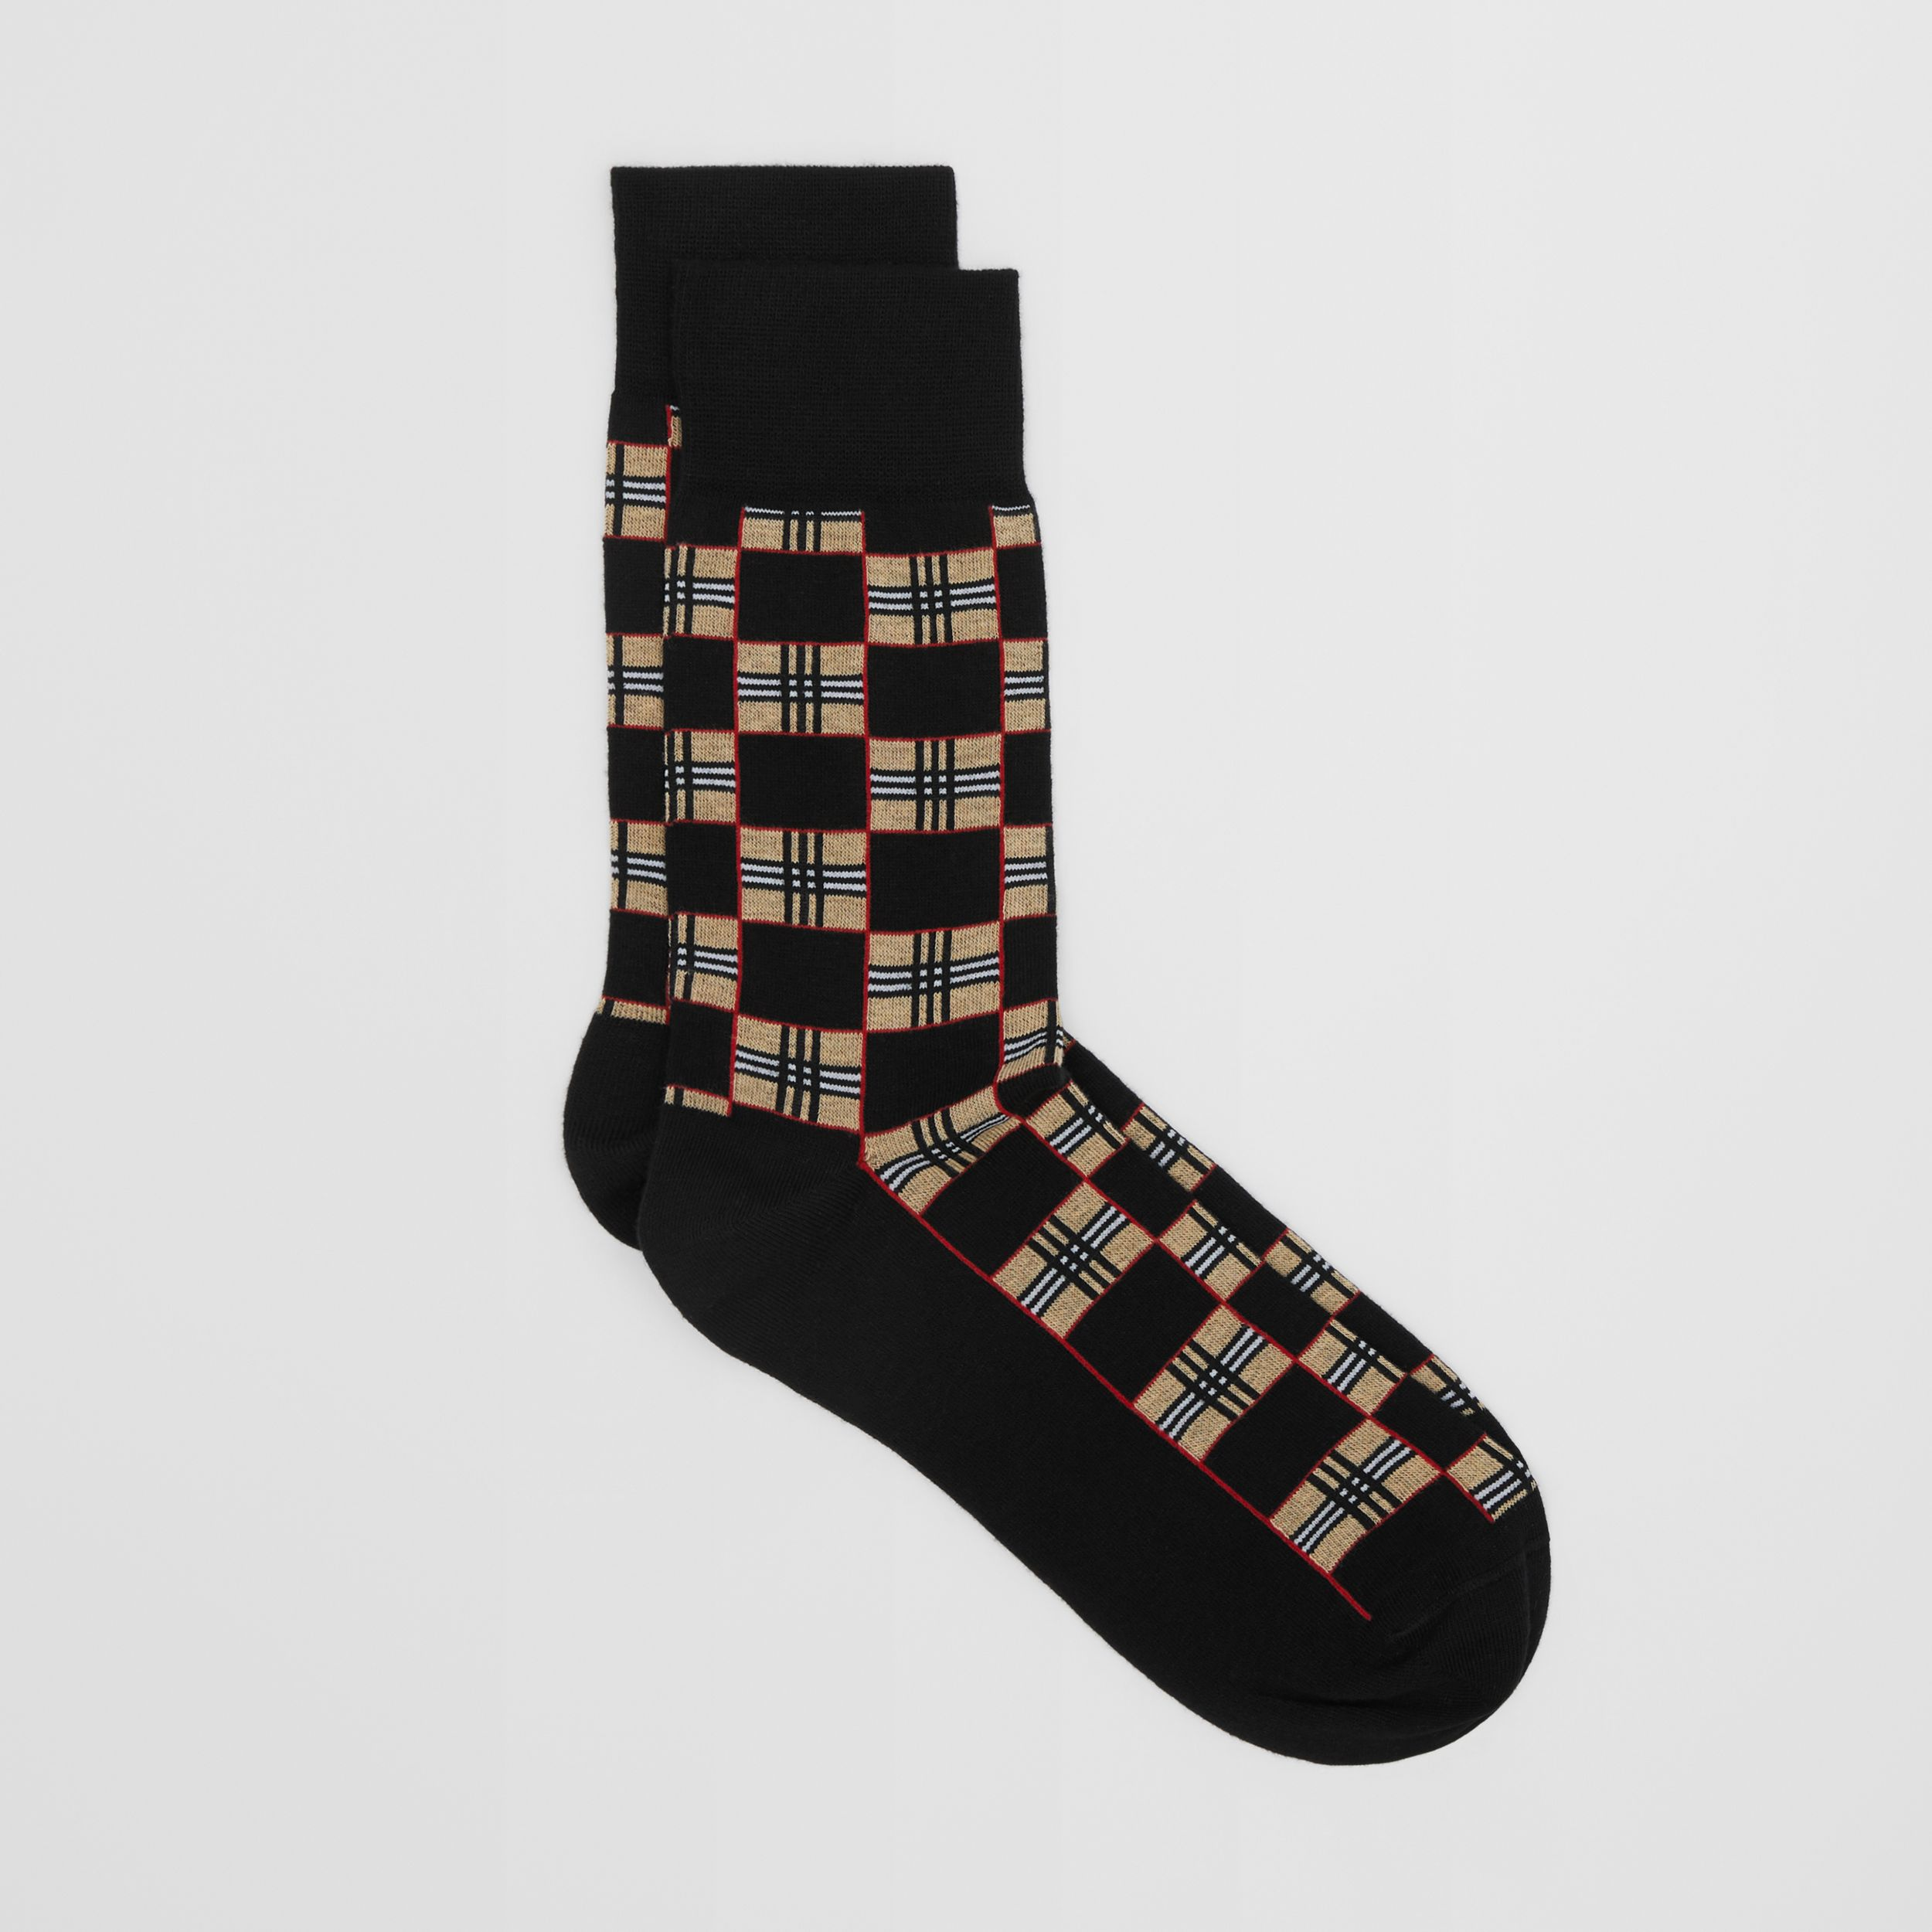 Chequer Cotton Blend Socks in Black | Burberry - 3